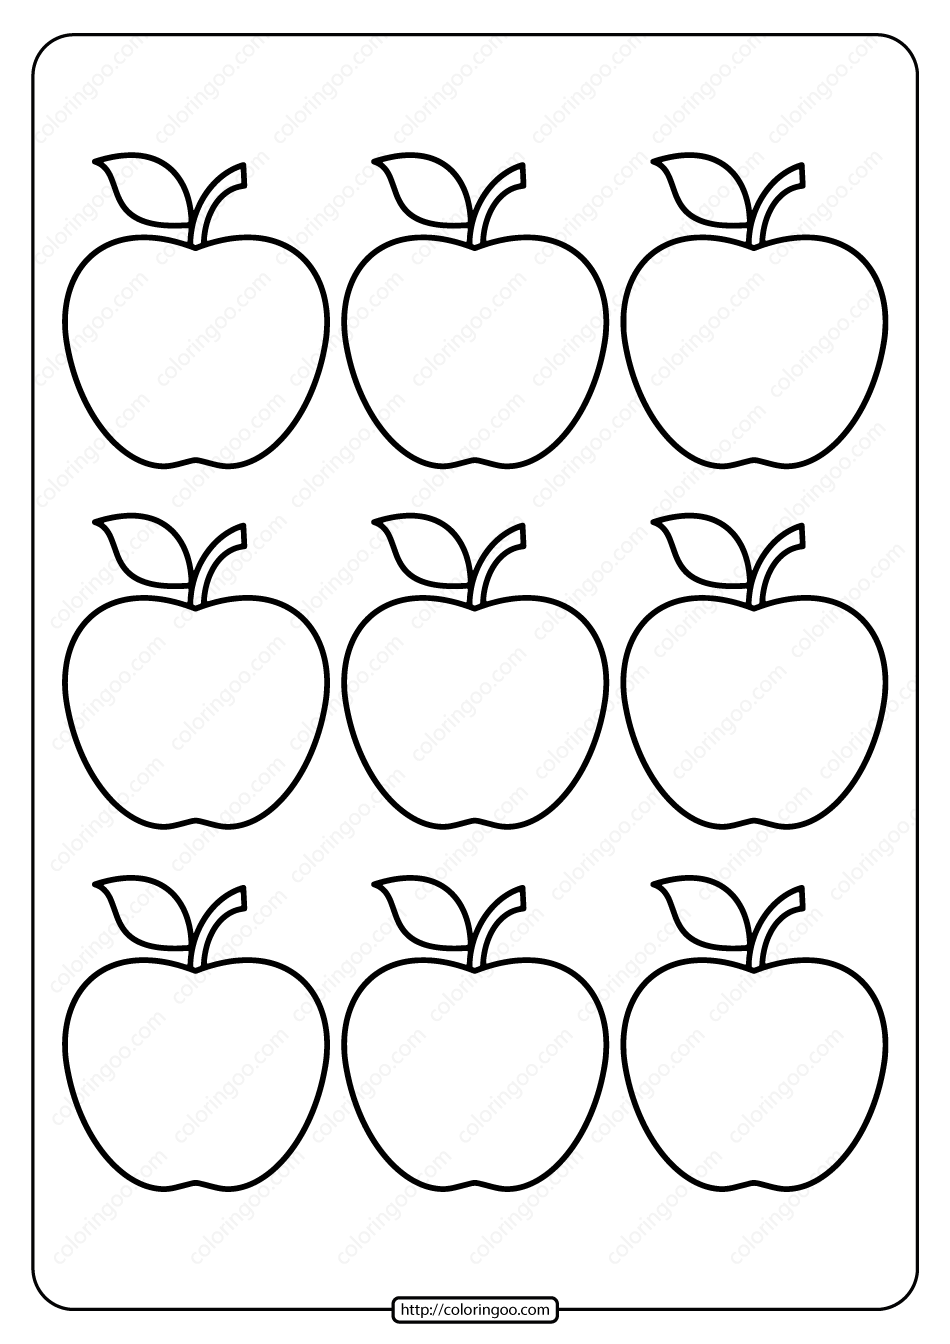 apple coloring for kids apple coloring pages fotolip for apple kids coloring